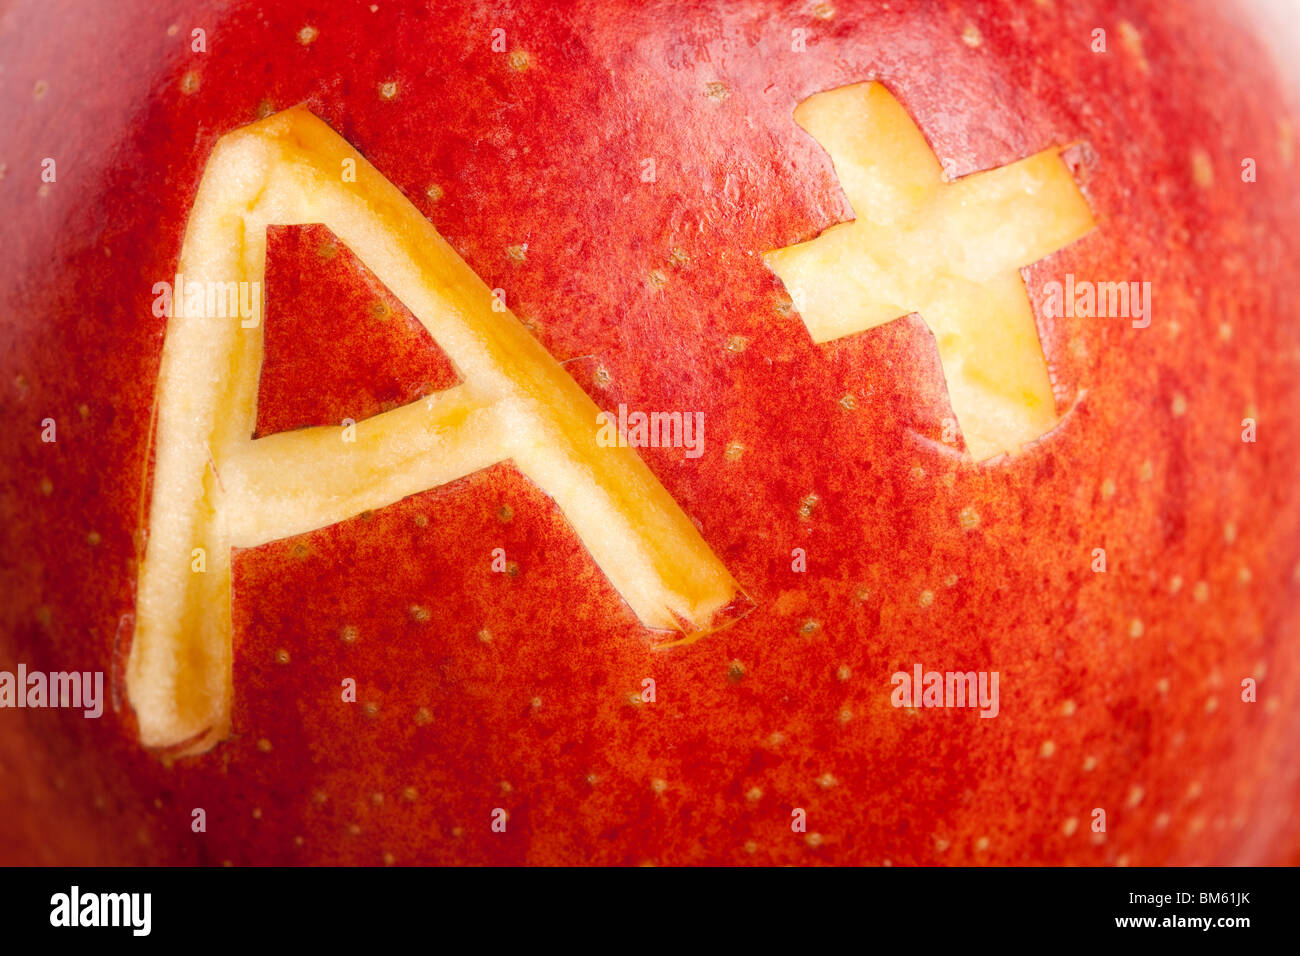 Red apple and A Plus sign, Concept of learning - Stock Image